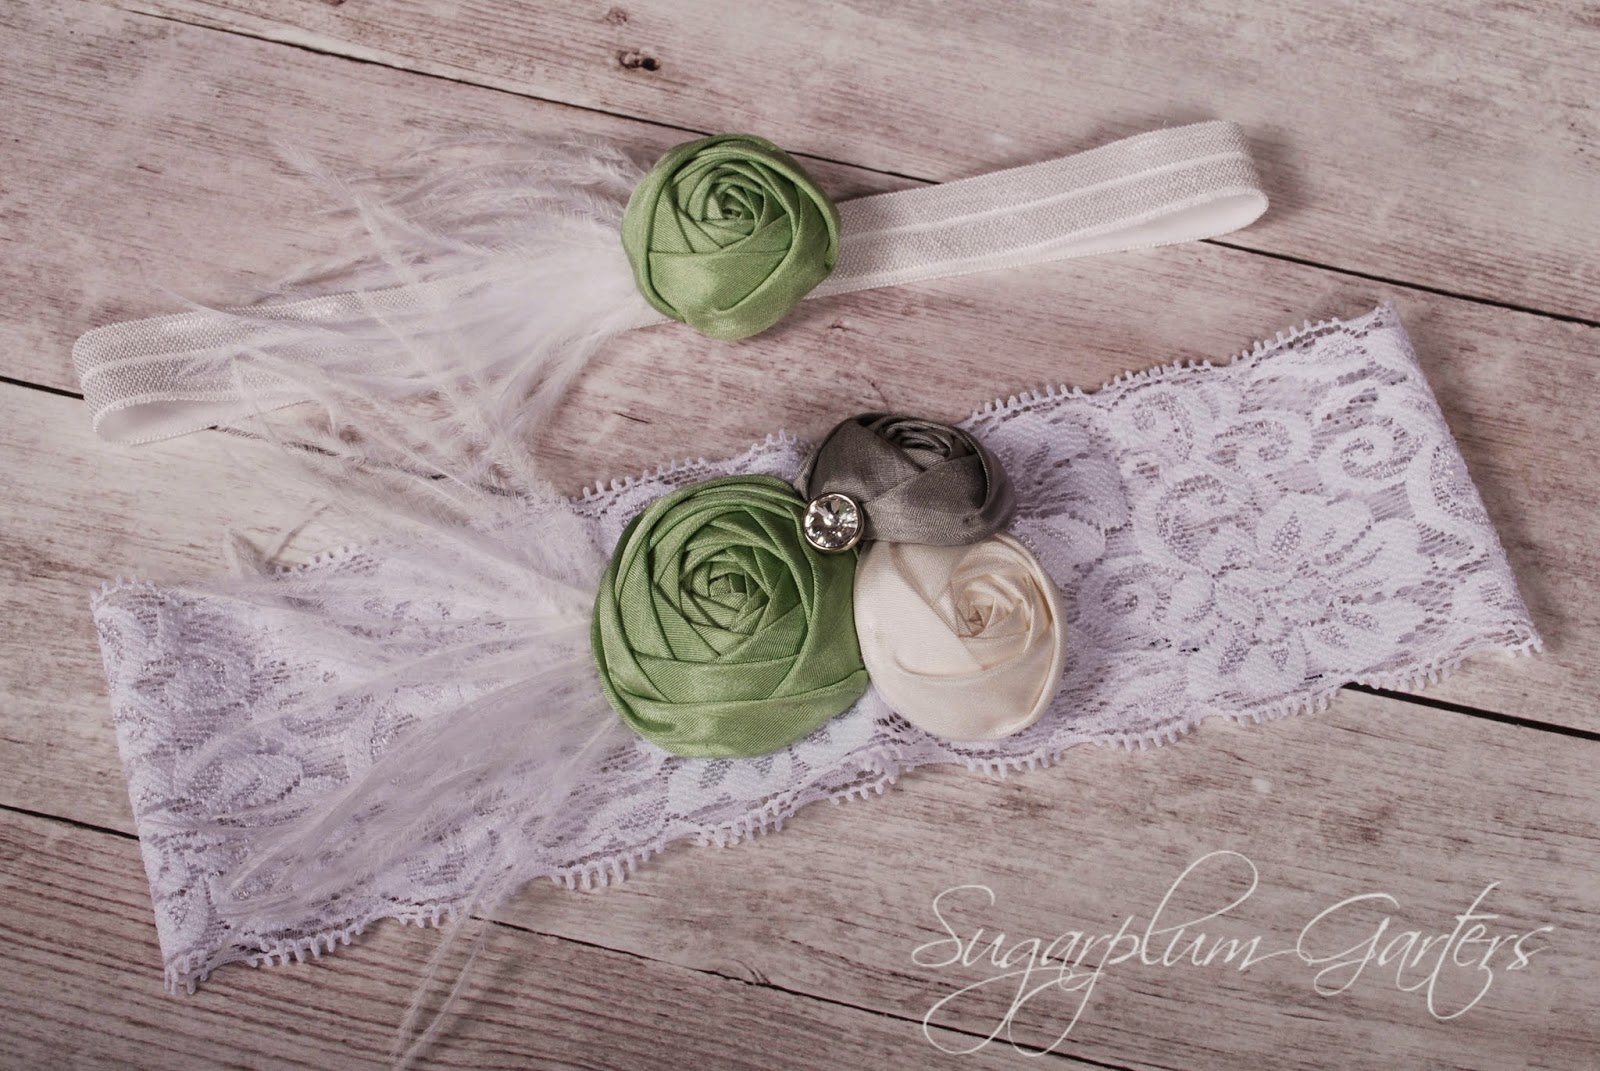 Custom Silk & Lace Wedding Garter Set by Sugarplum Garters